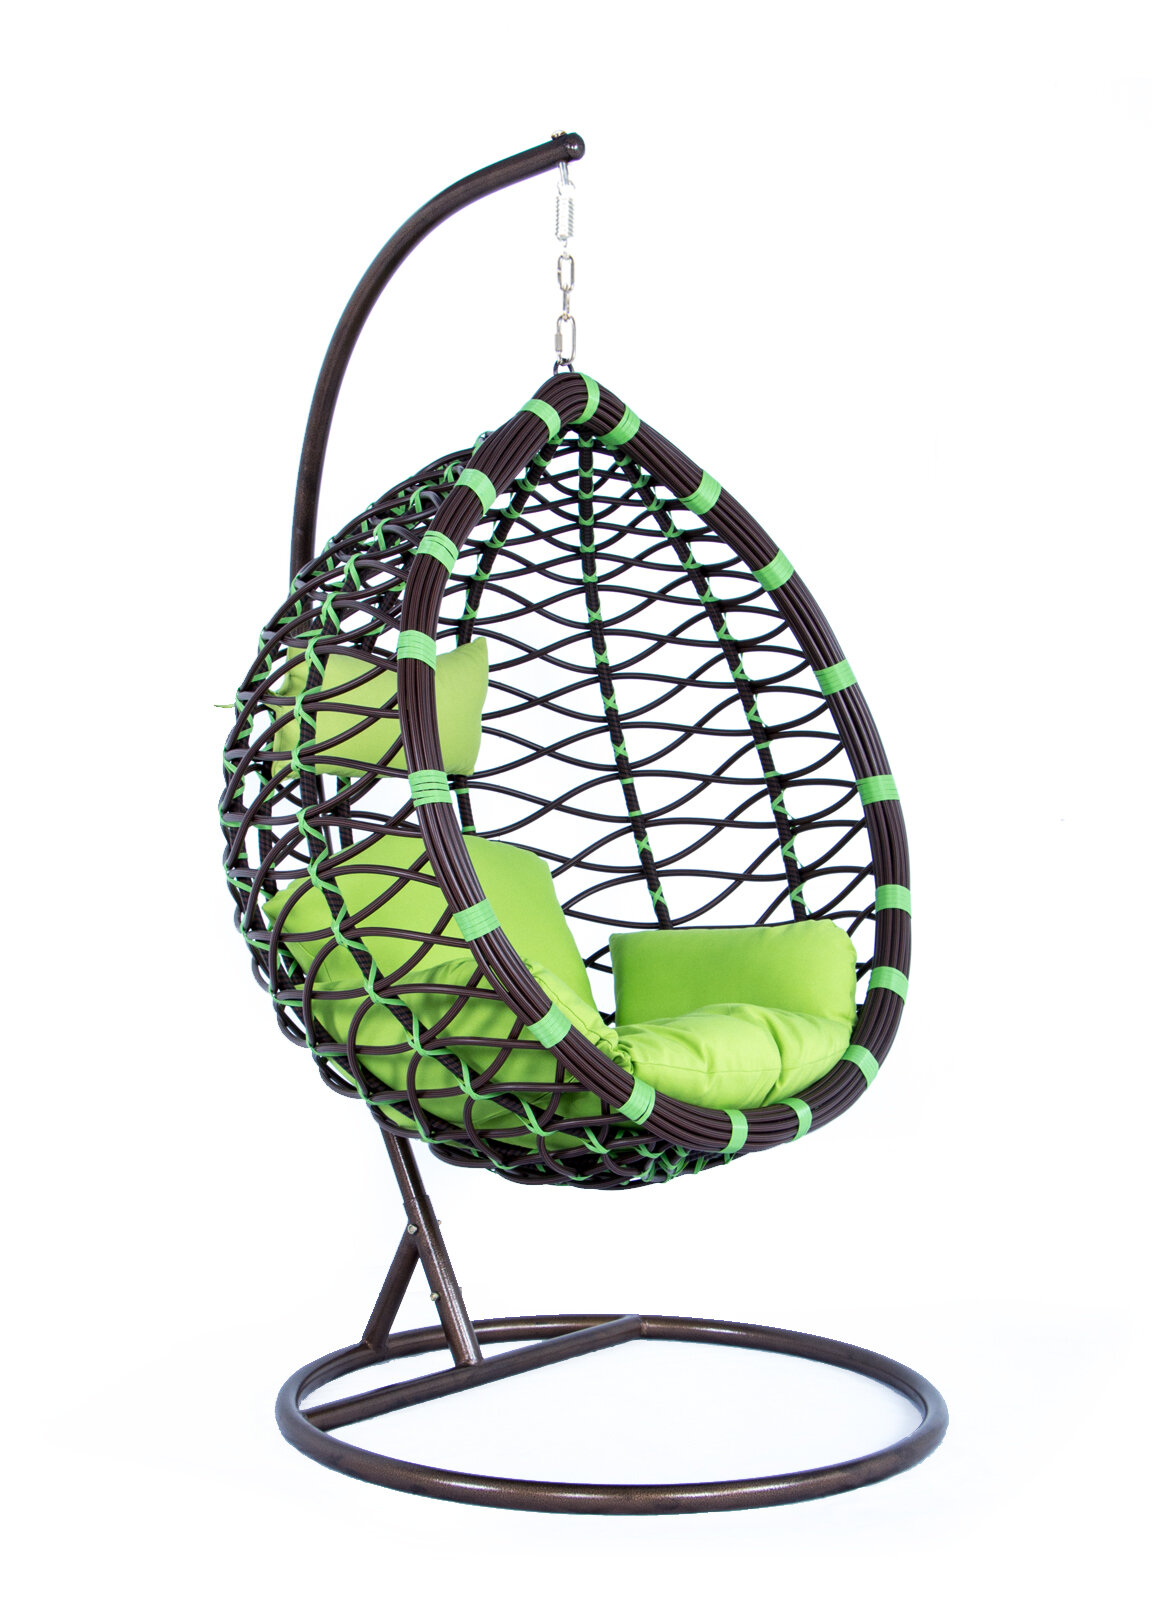 Bayou Breeze Schwartz Wicker Hanging Egg Swing Chair With Stand